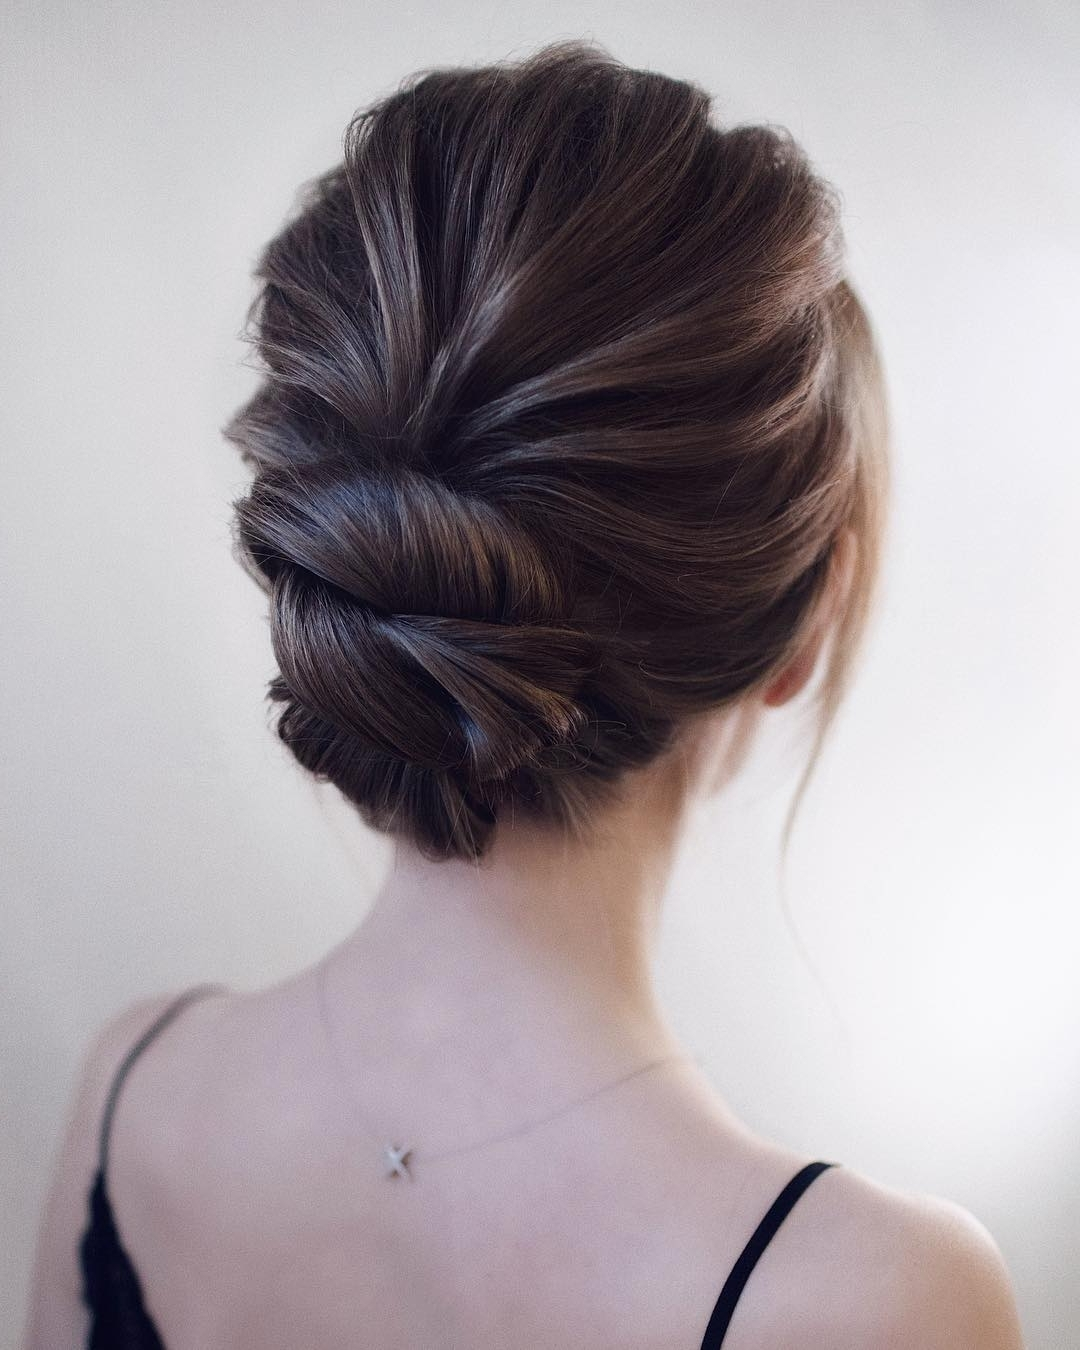 10 Updos For Medium Length Hair Prom & Homecoming Medium Updo Hairstyles For Women